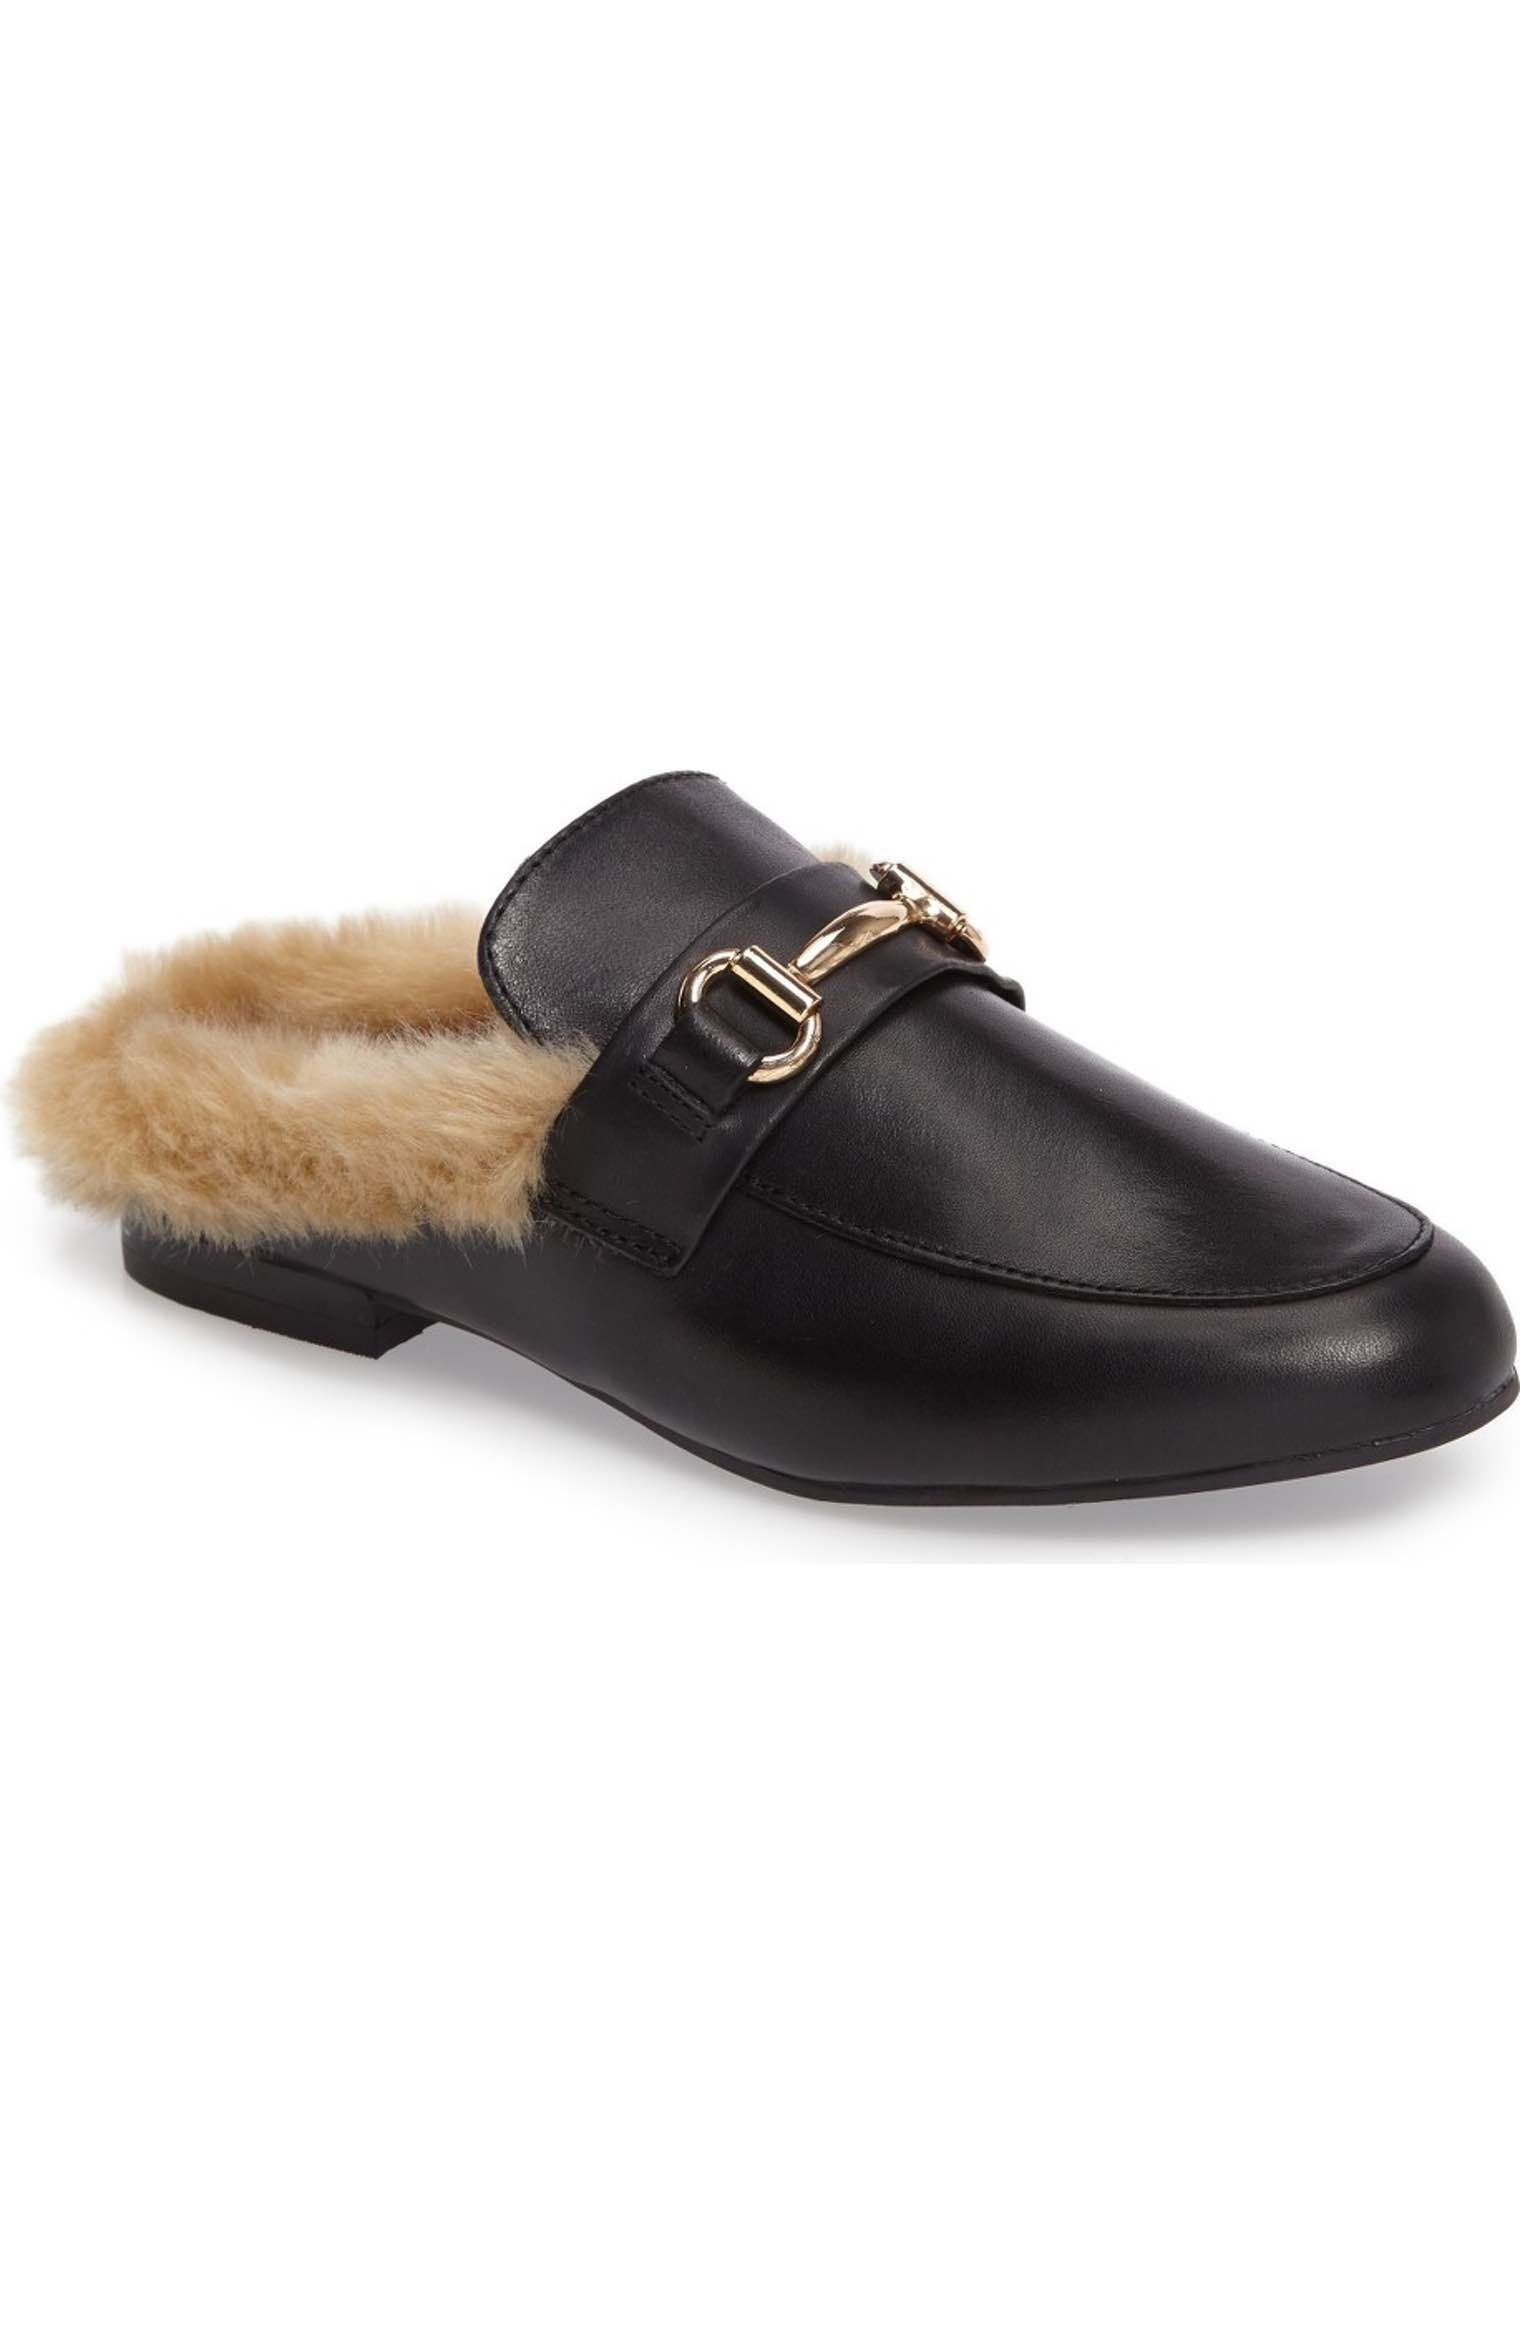 cc19020f3ba Steve Madden Jill Faux Fur Backless Loafer